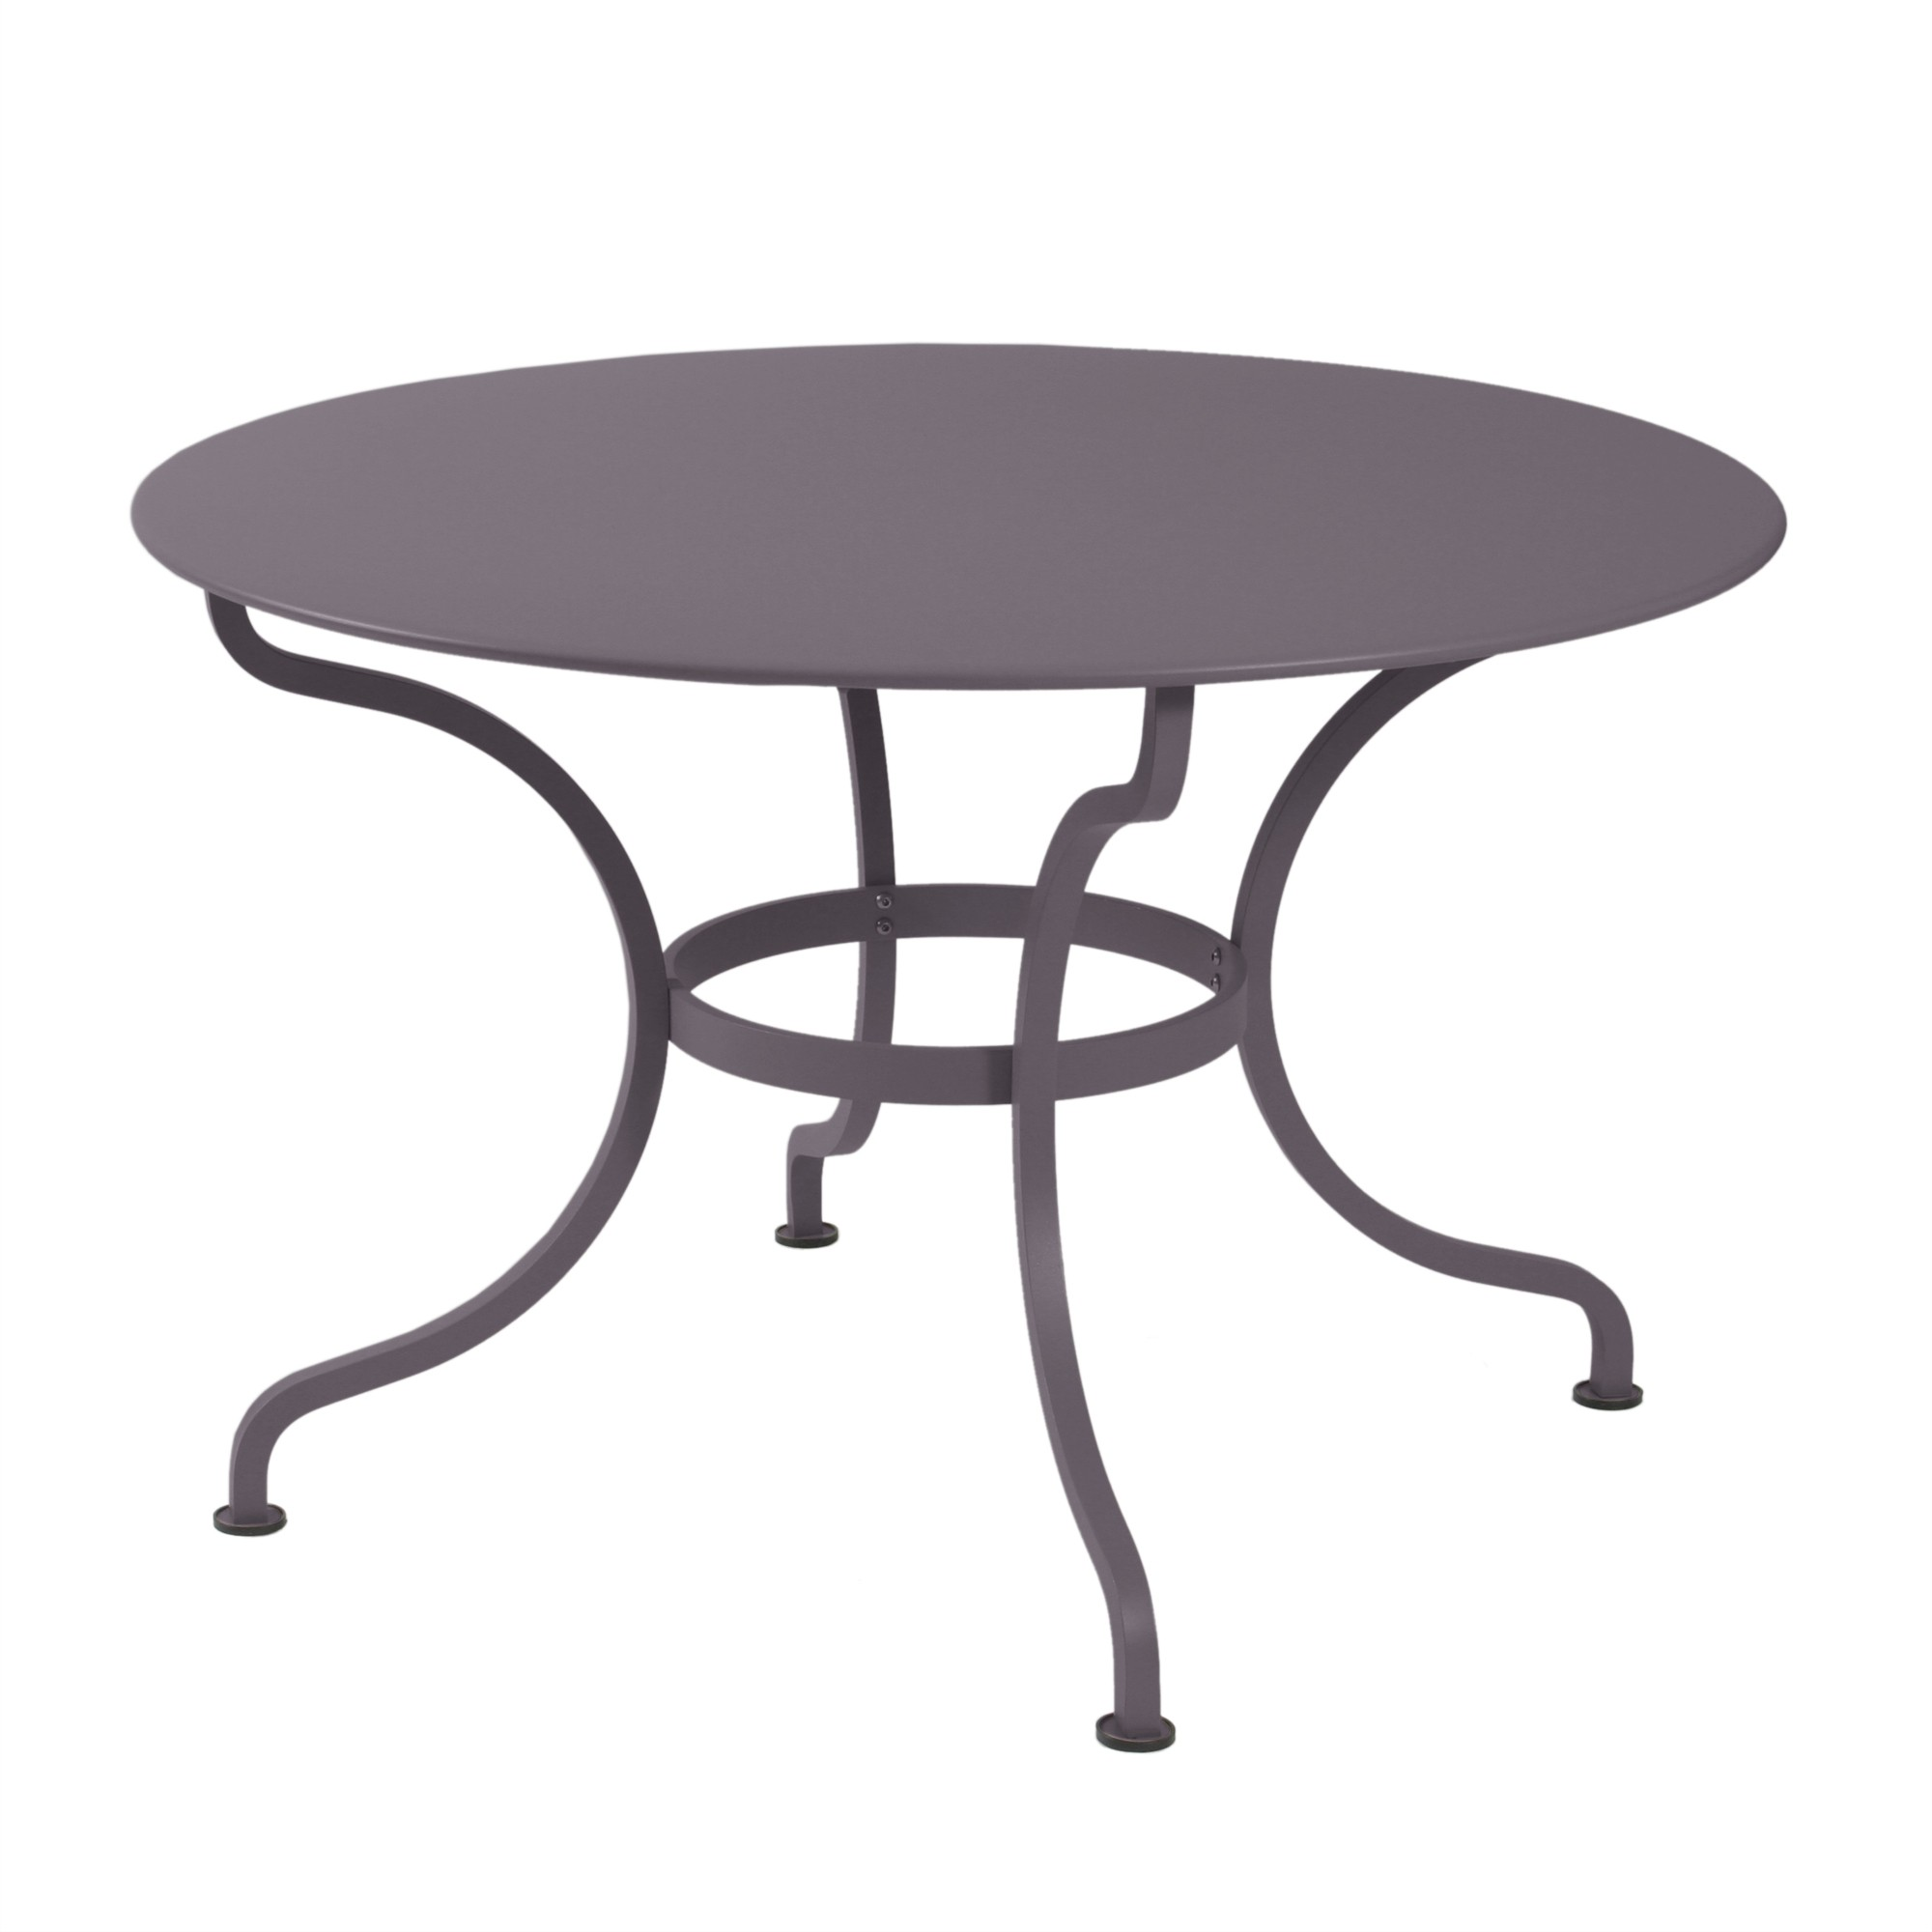 Table ronde ROMANE 117 cm de Fermob, Prune